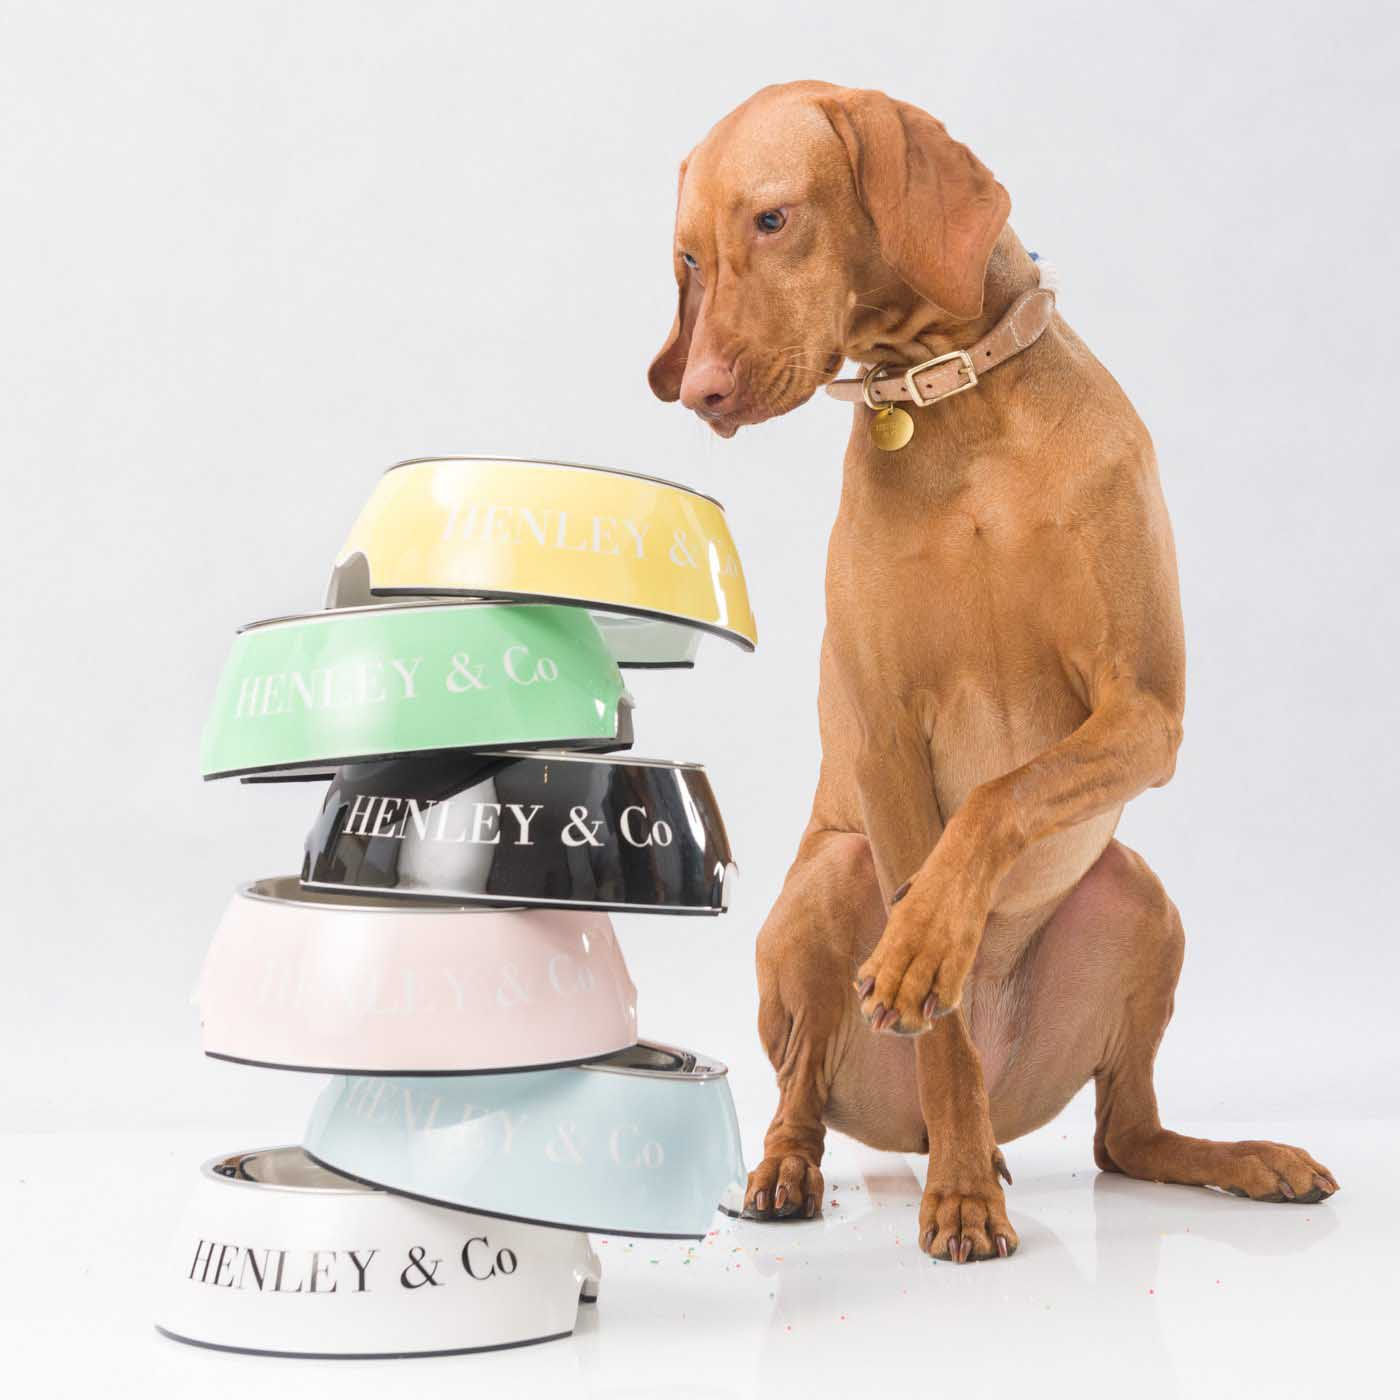 A sitting brown dog looking at a stack of Henley and Co food bowls